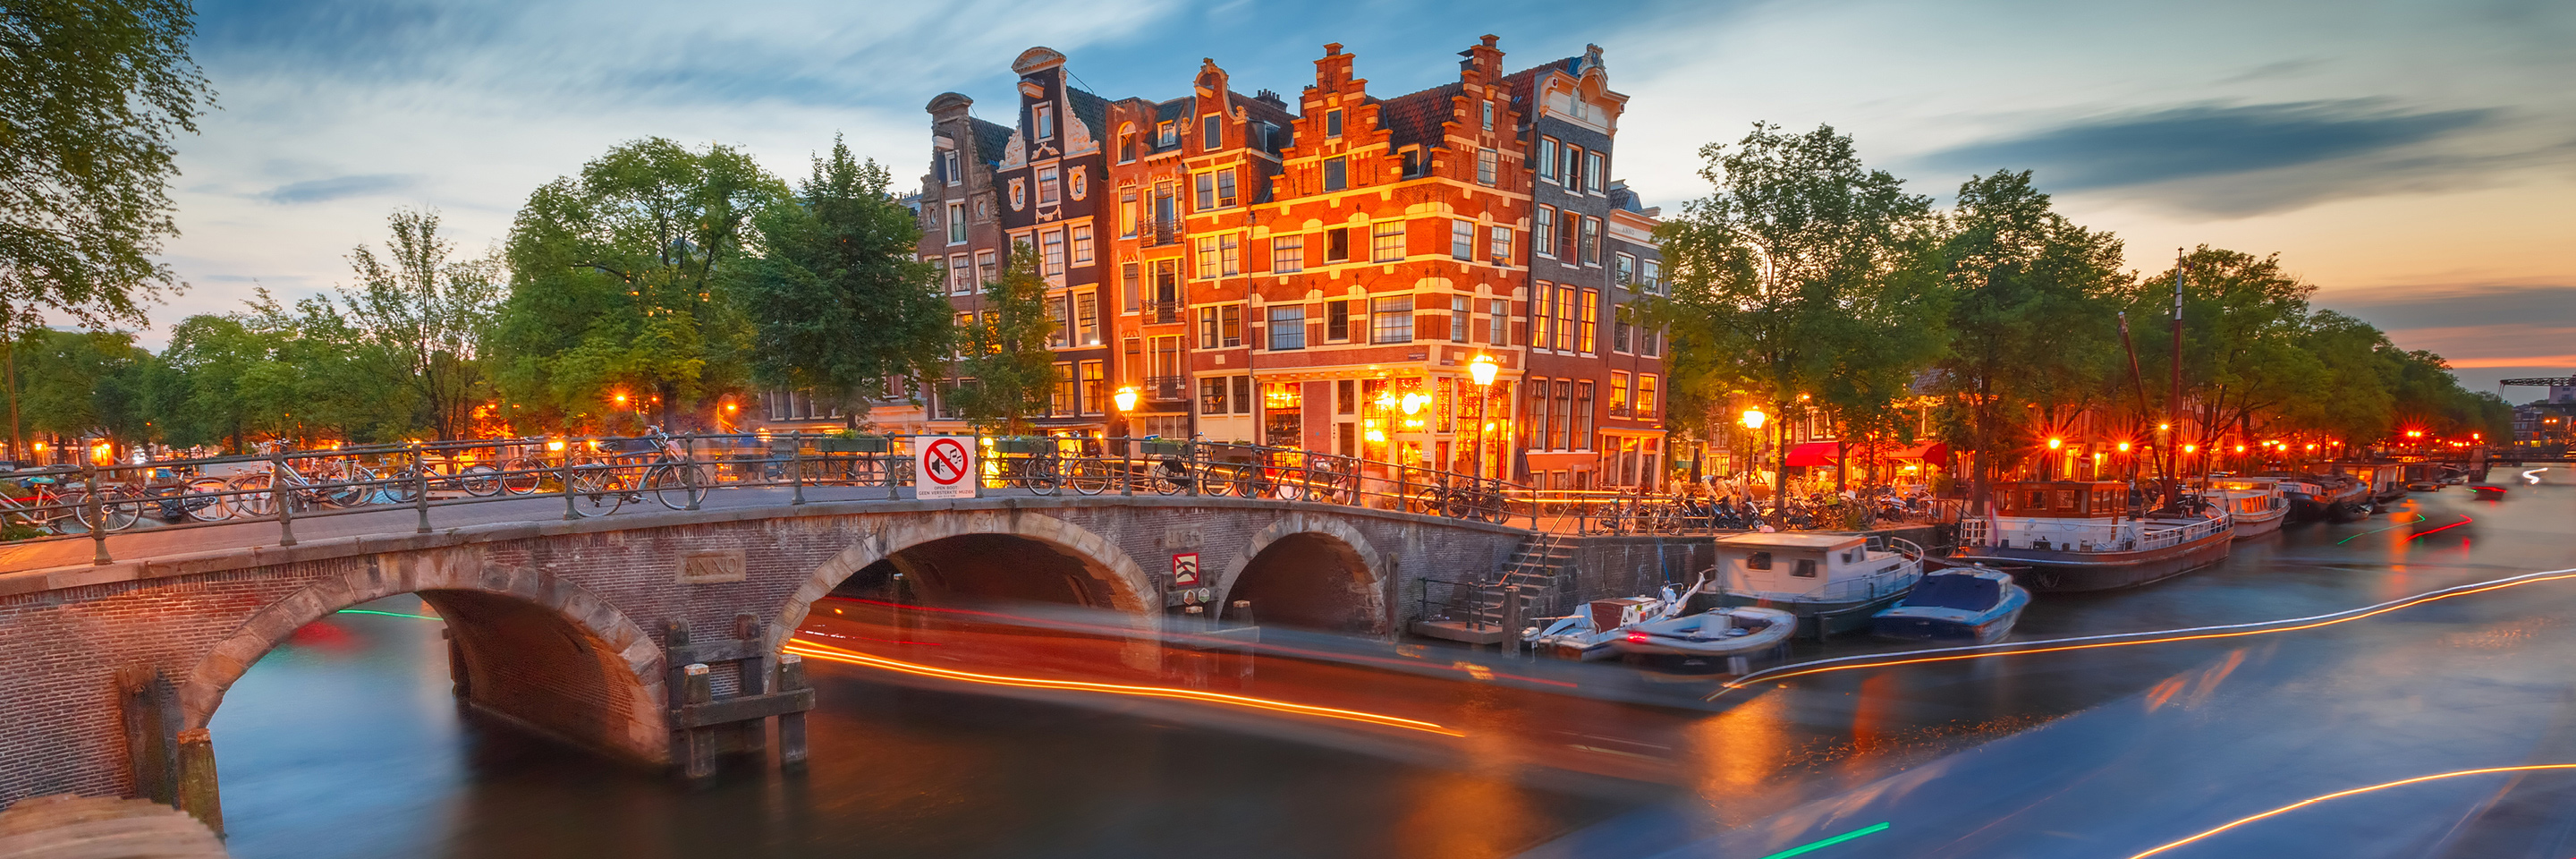 Magnificent Europe with 1 Night in  Amsterdam